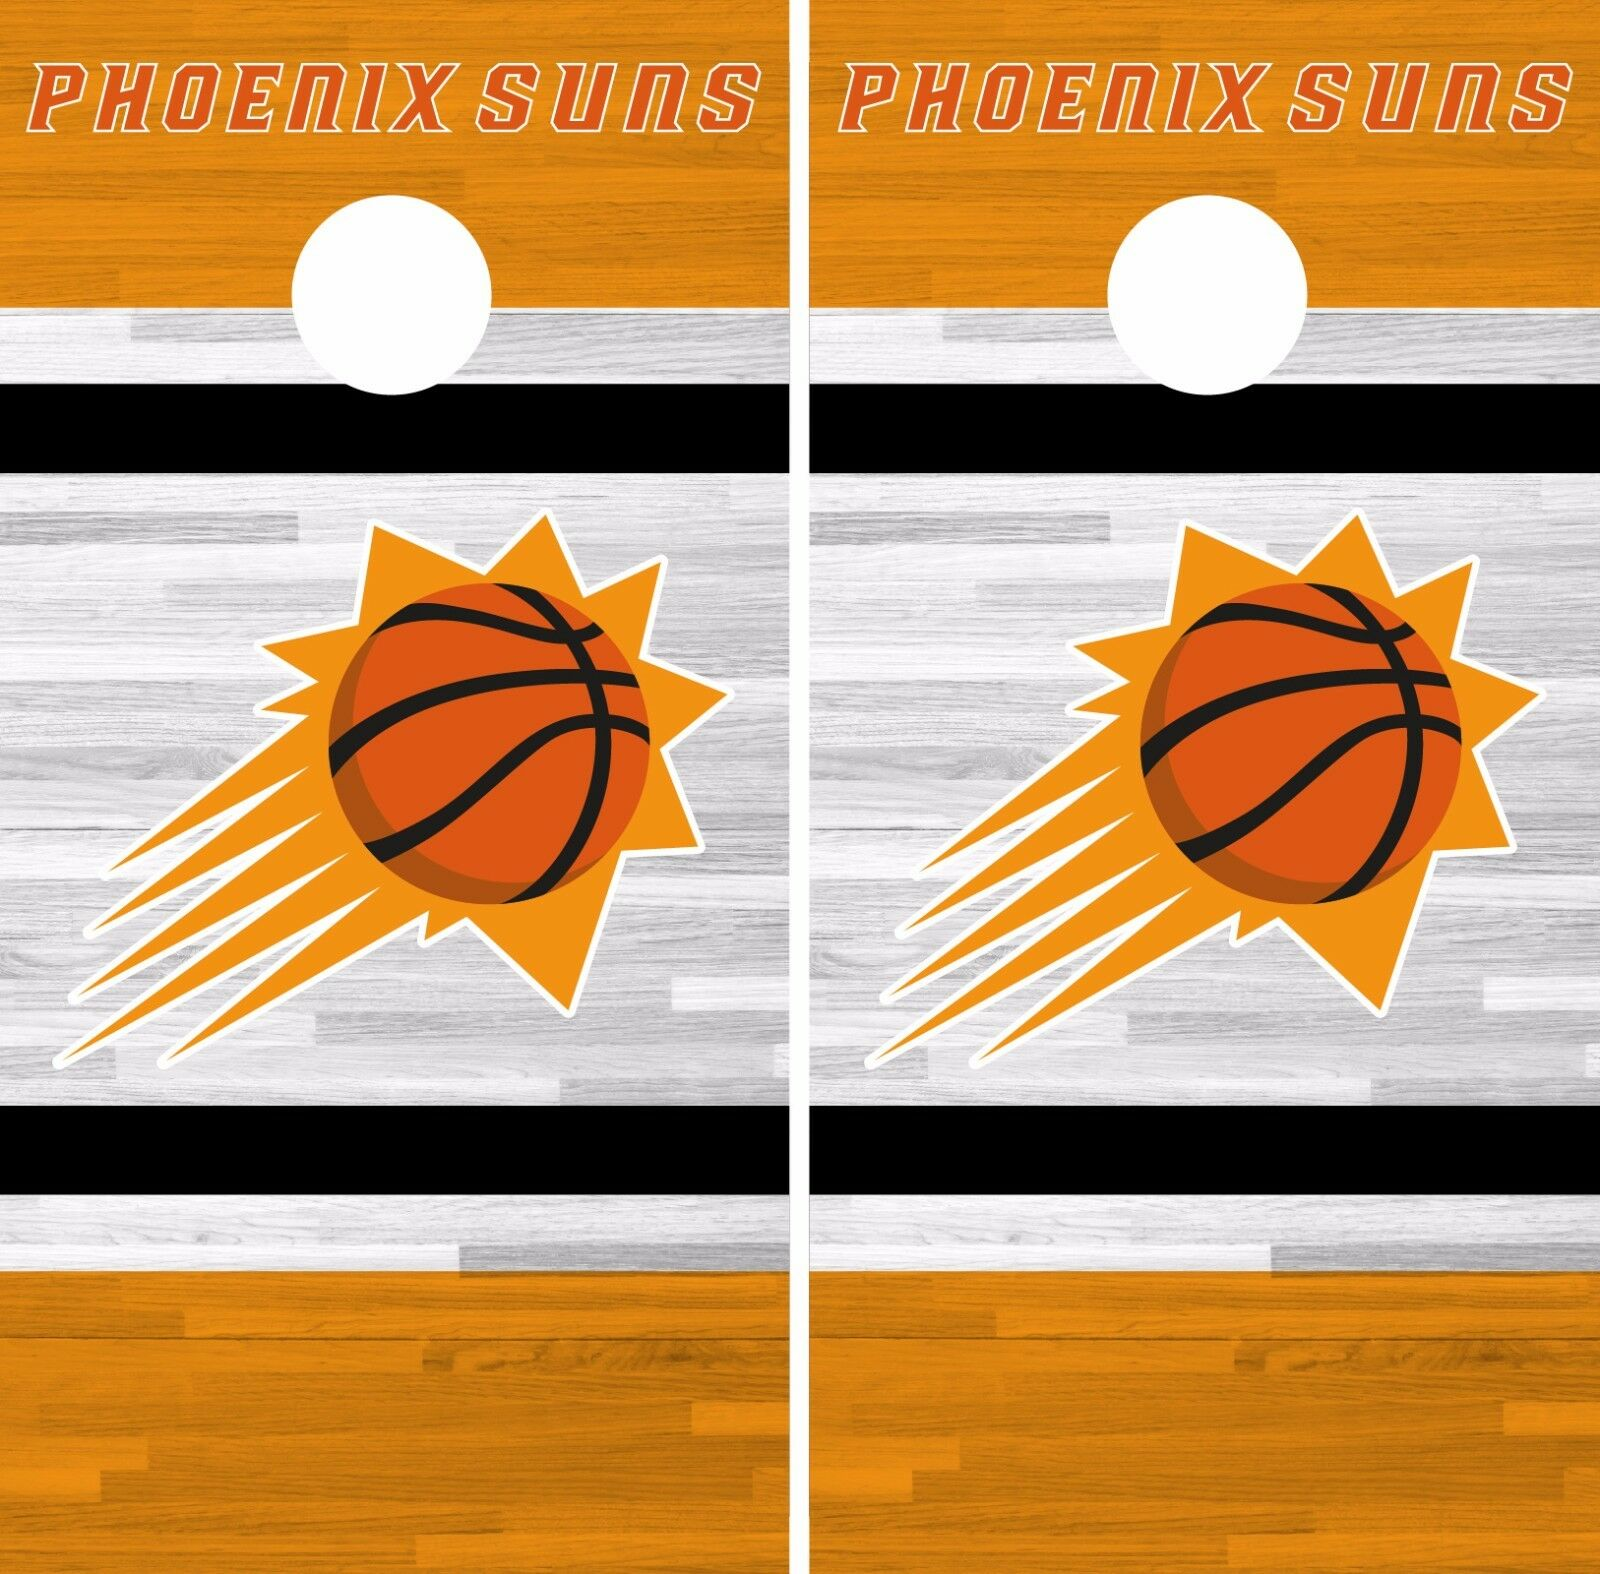 Phoenix Suns Cornhole  Skin Wrap NBA Basketball Team colors Vinyl Decal DR320  save 60% discount and fast shipping worldwide